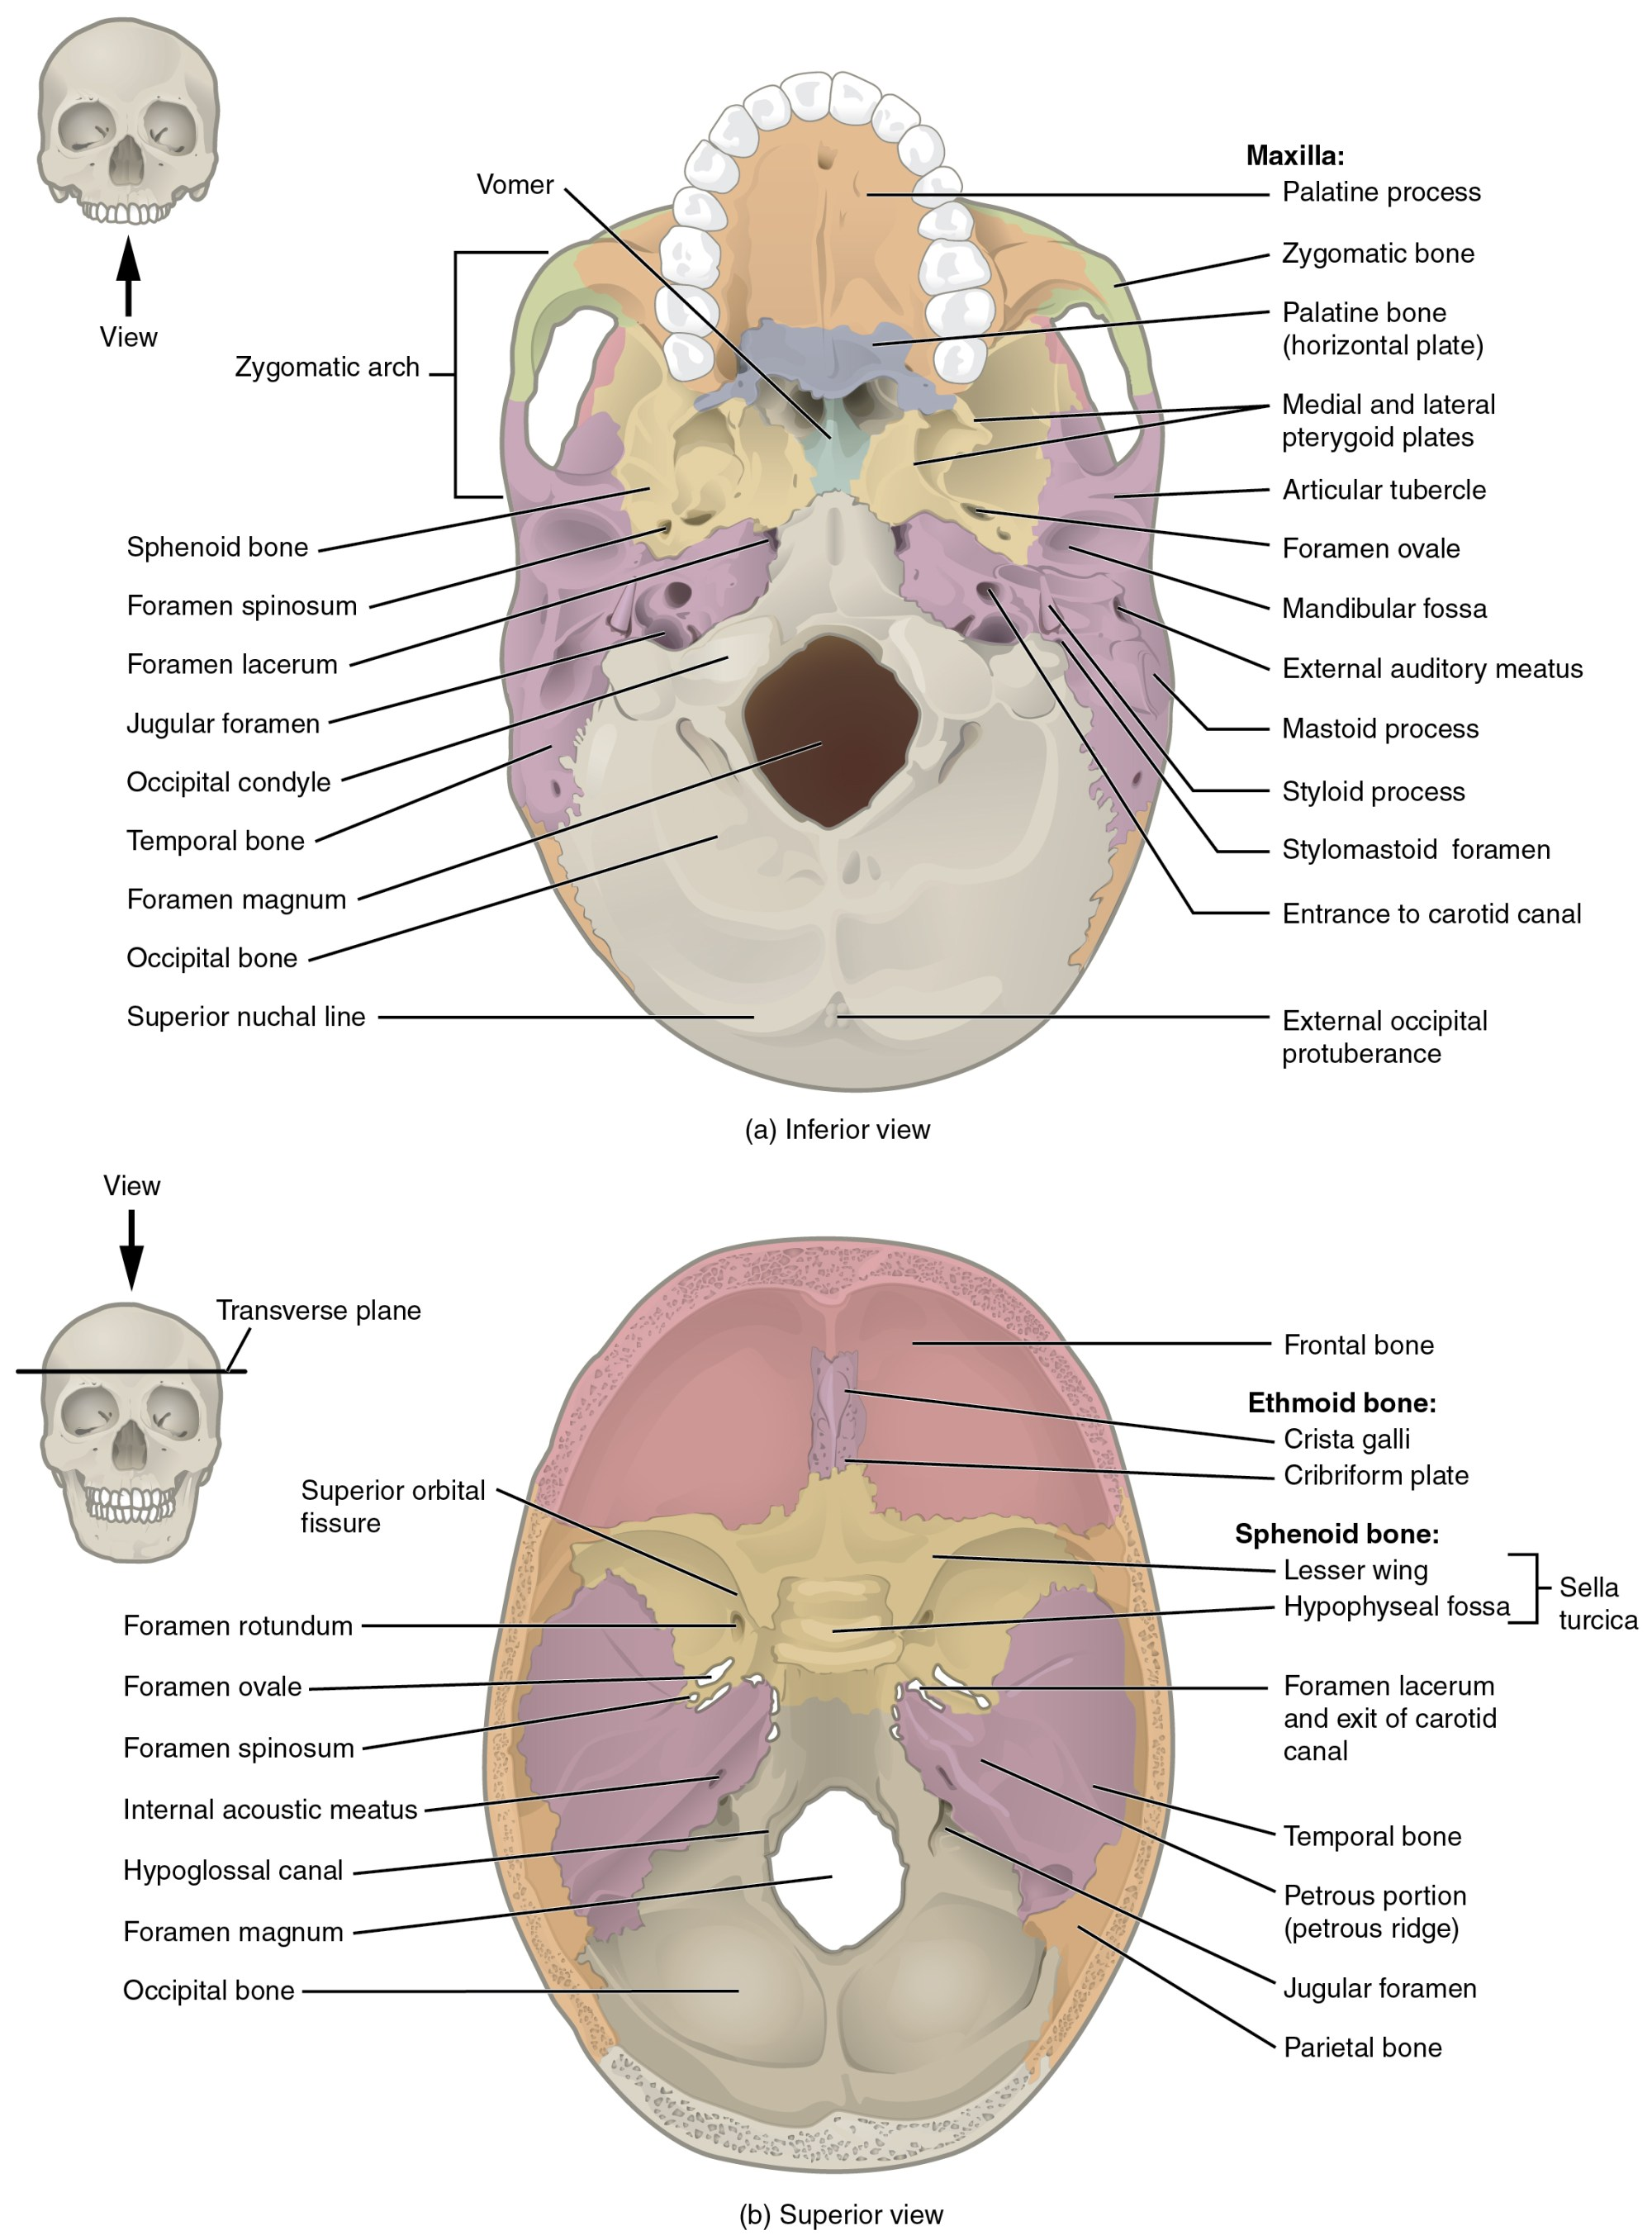 hight resolution of this image shows the superior and inferior view of the skull base in the top